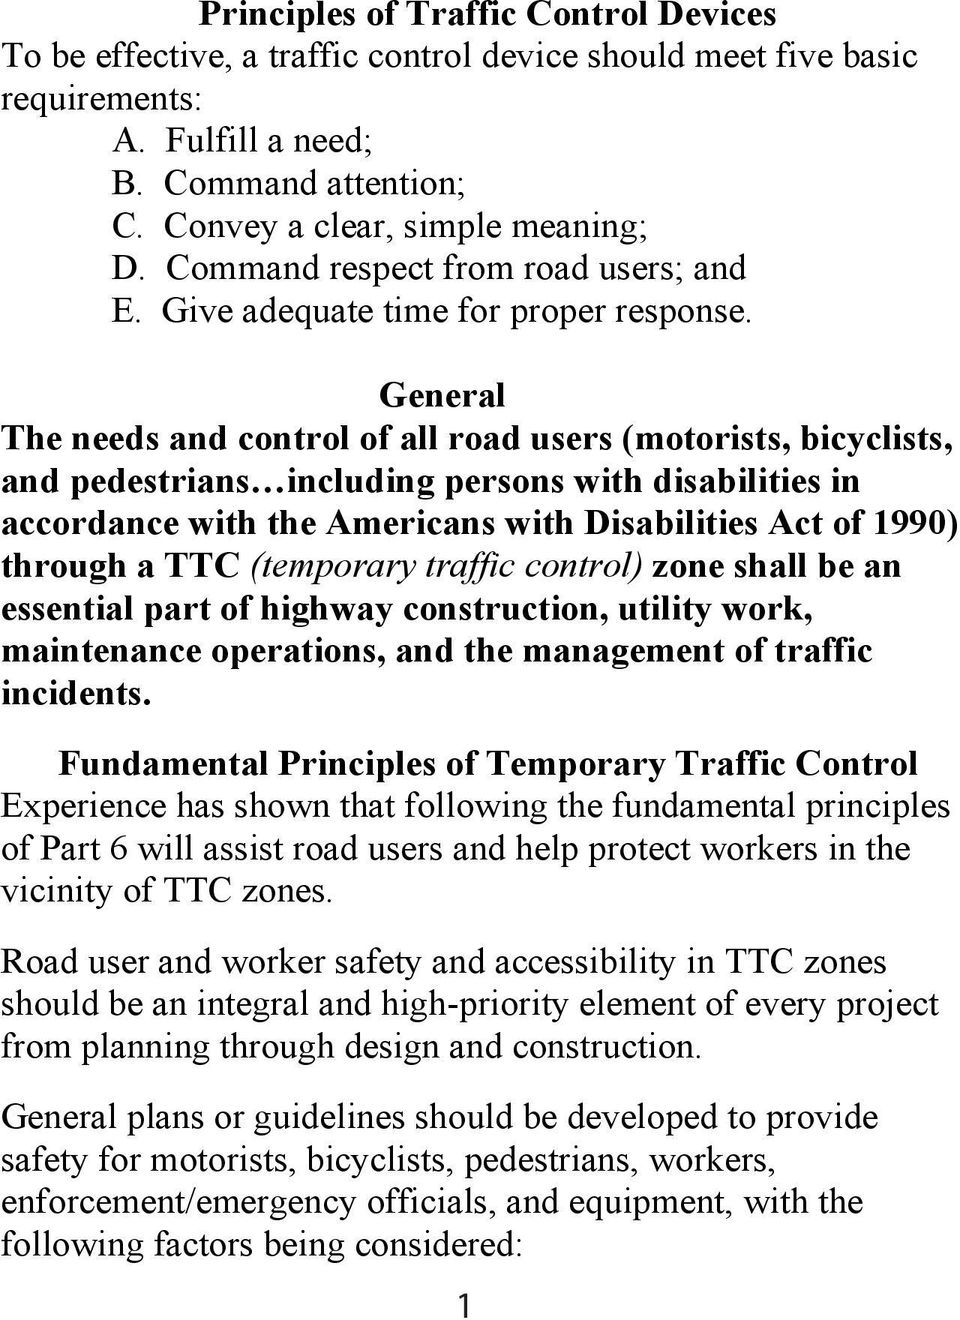 General The needs and control of all road users (motorists, bicyclists, and pedestrians including persons with disabilities in accordance with the Americans with Disabilities Act of 1990) through a